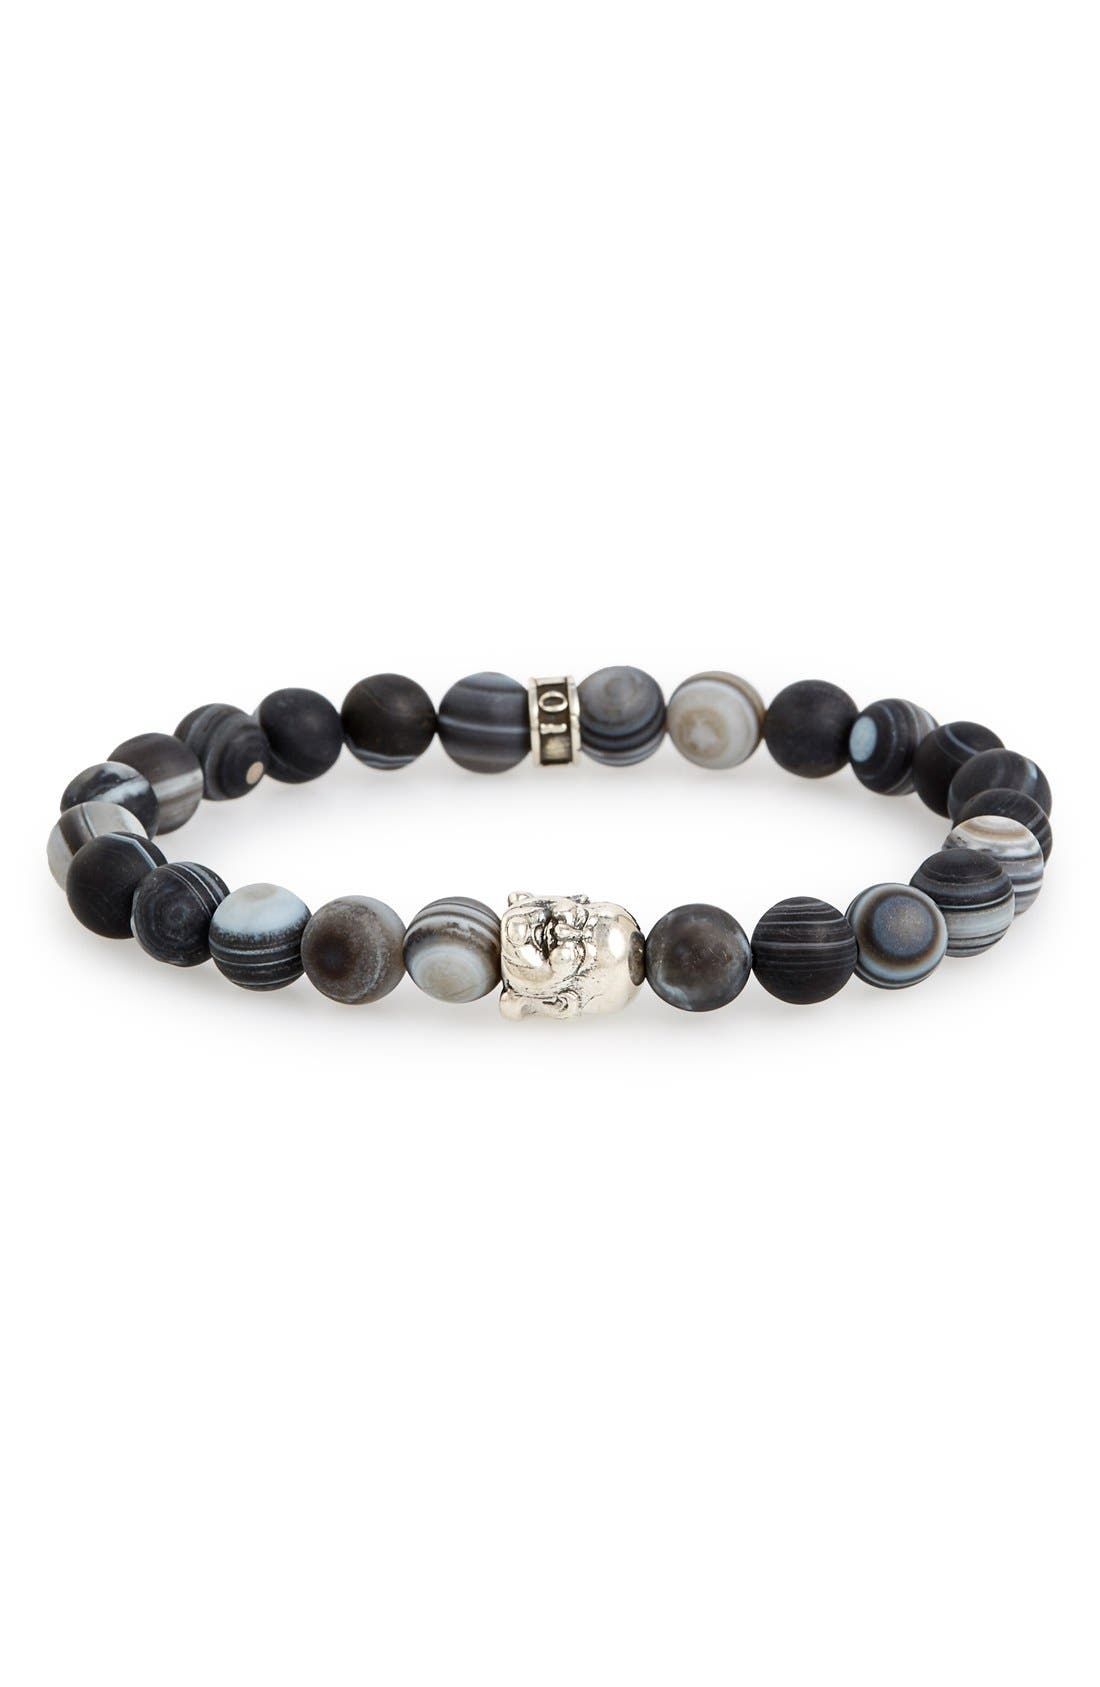 Frosted Agate Buddha Bead Bracelet,                         Main,                         color, Silver